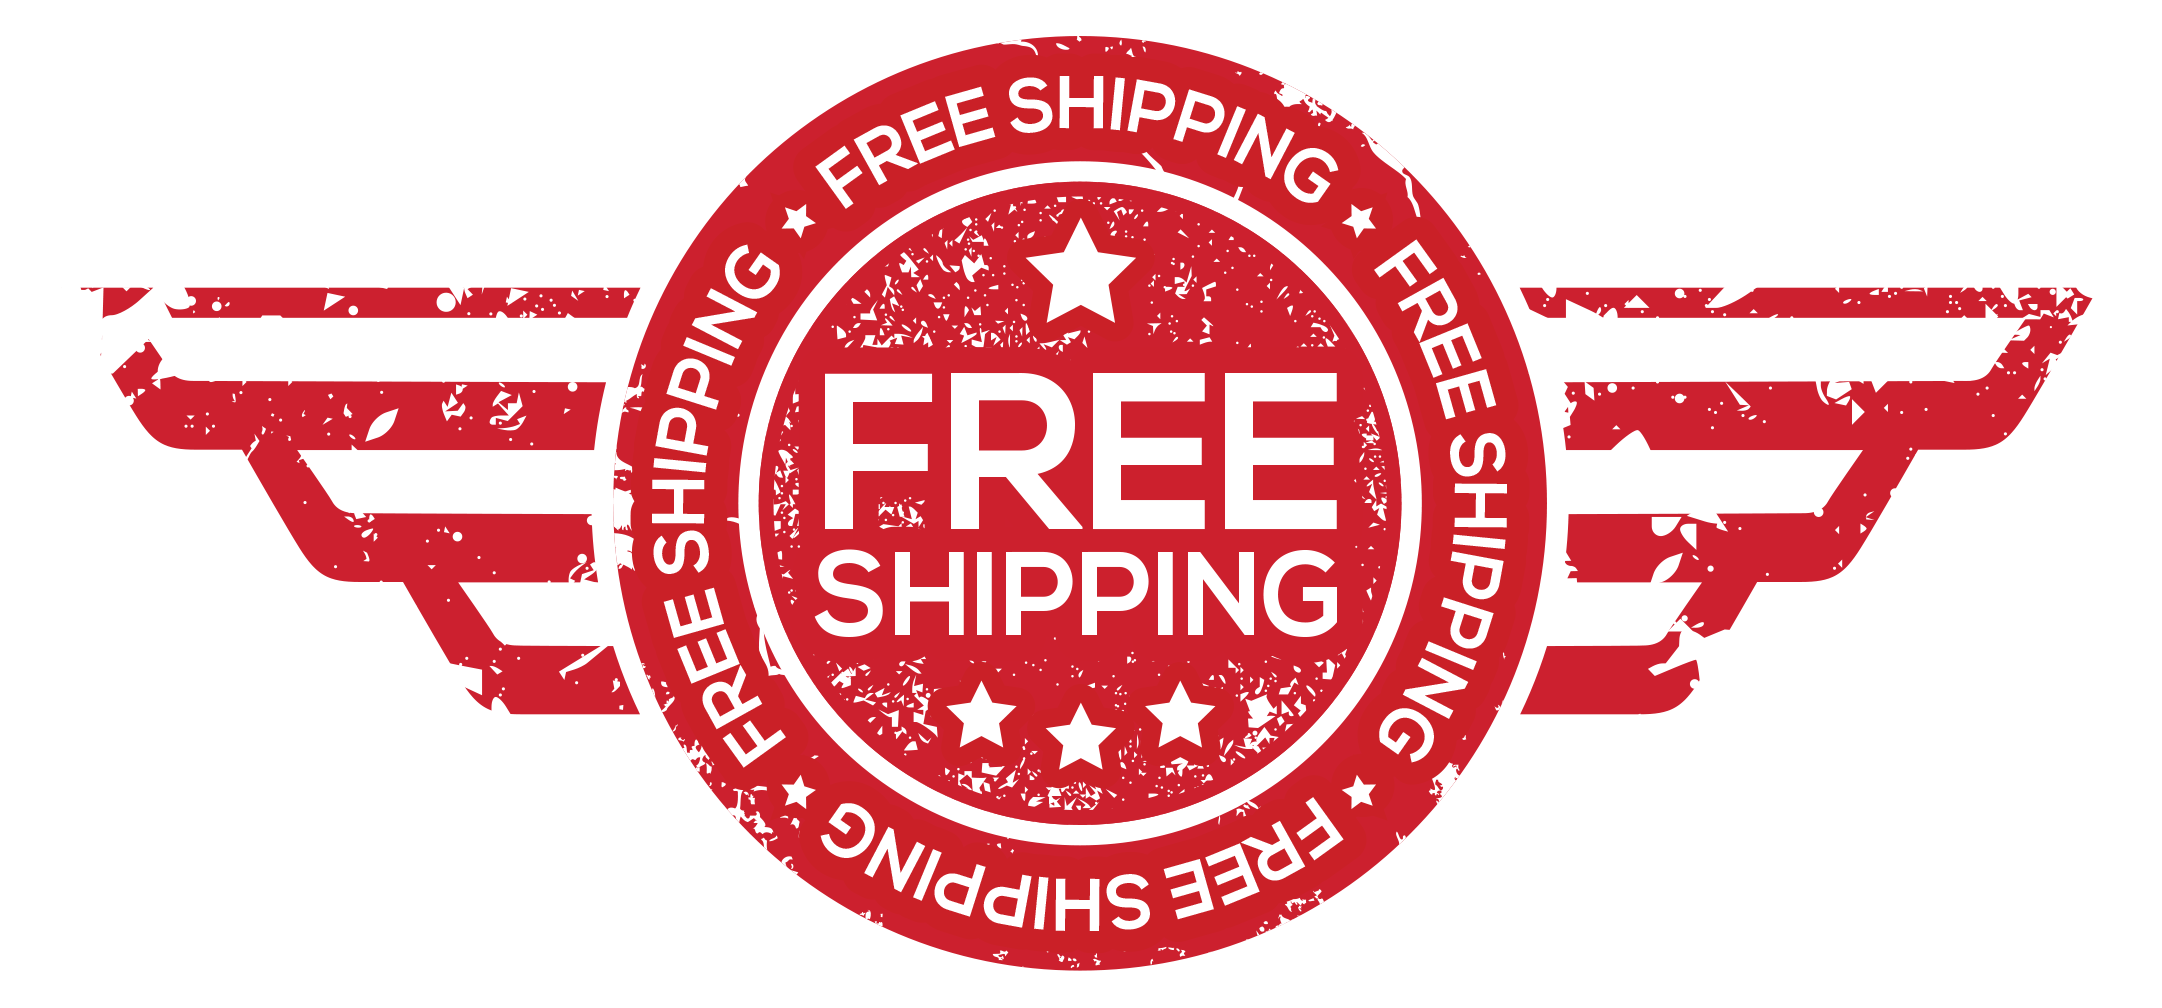 Free shipping banner png. Transparent images download clip